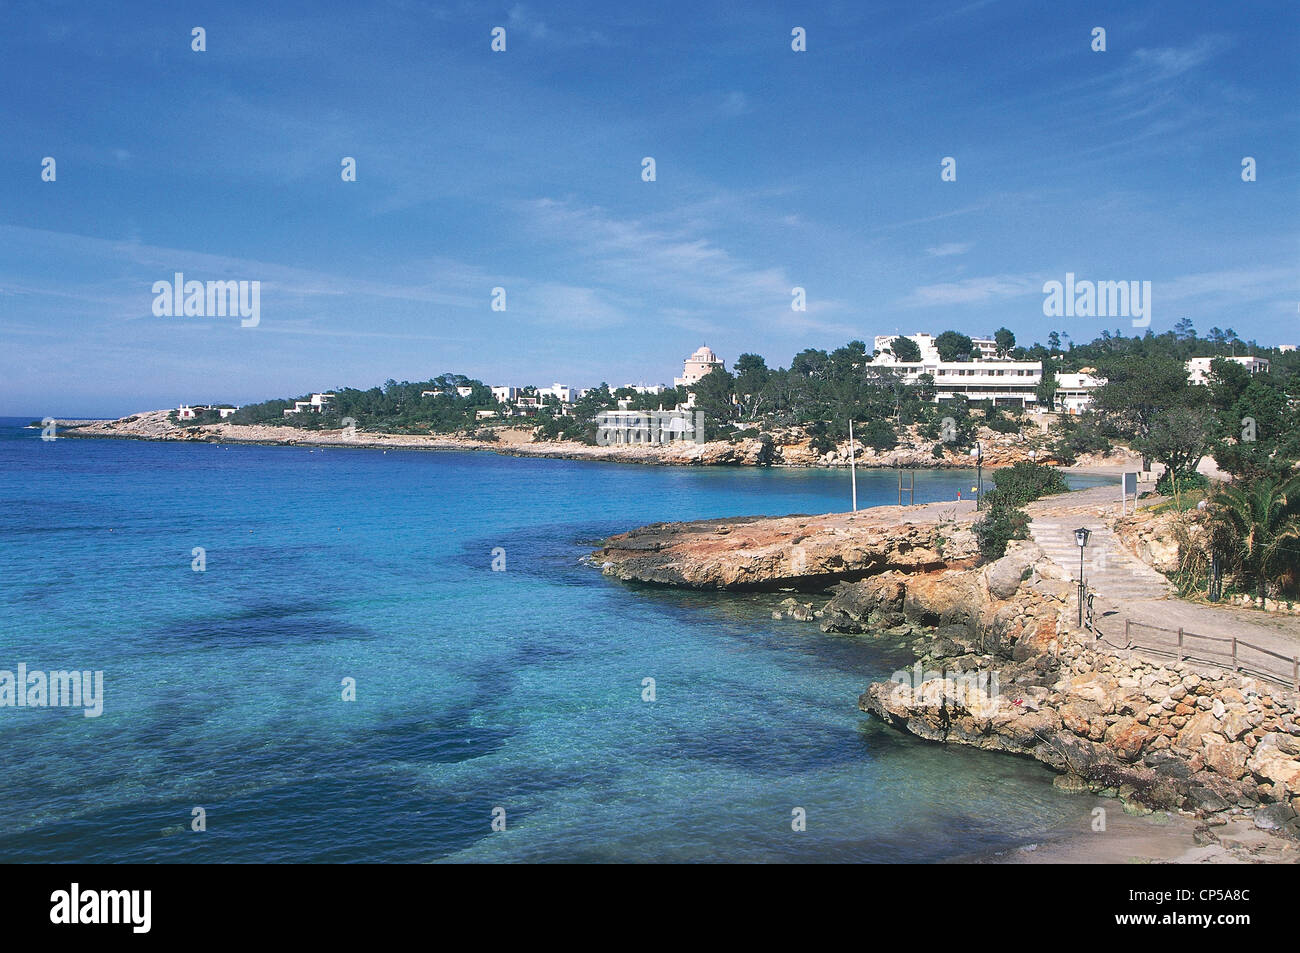 Spain - Balearic Islands - Ibiza - Es Cubells. - Stock Image